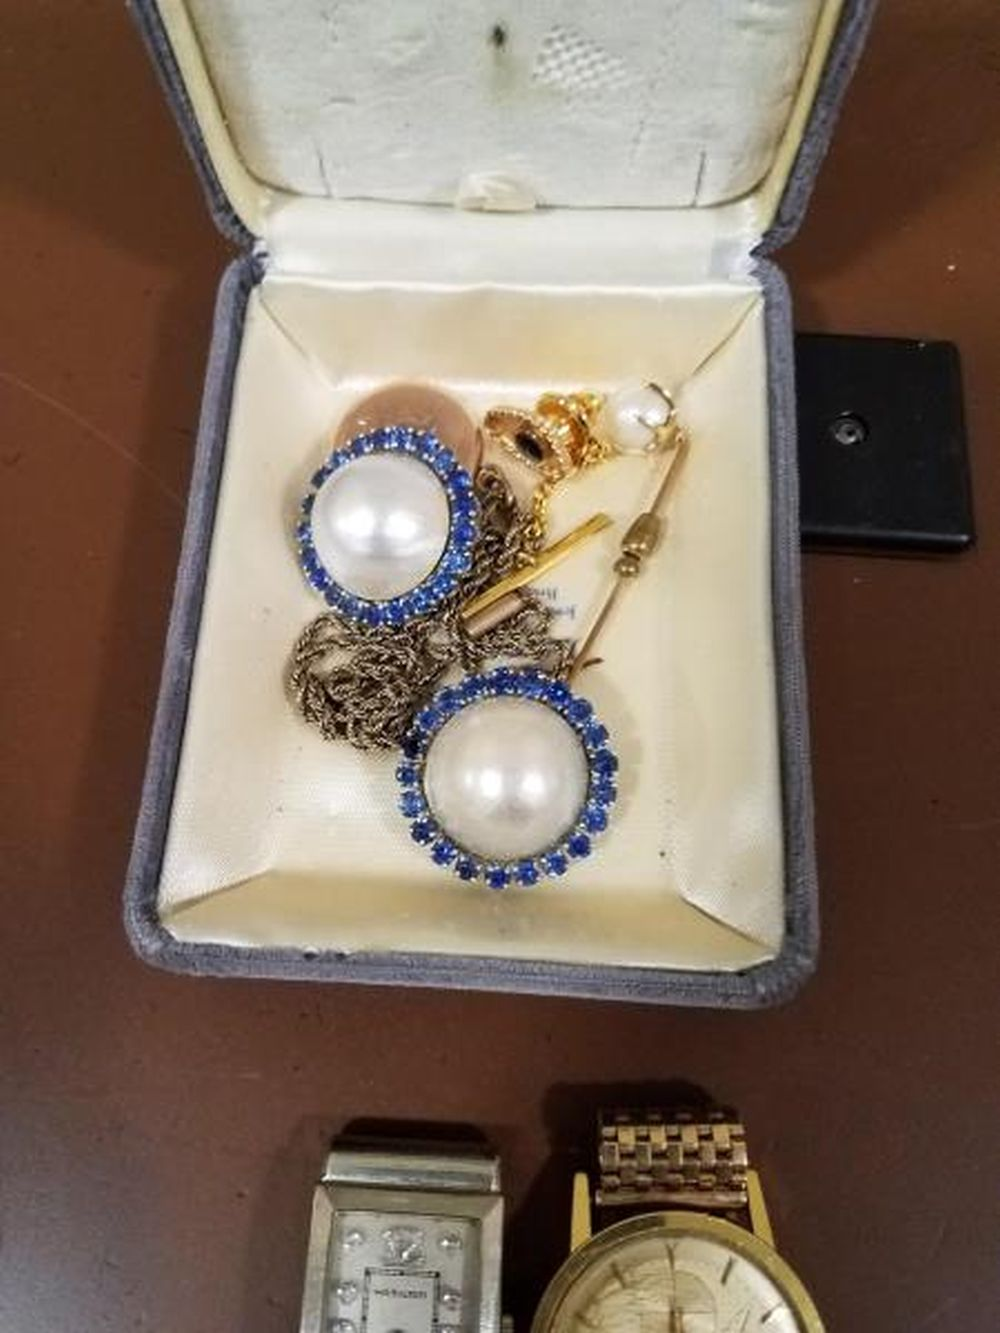 Clip On Earings w/ 21 Blue Saphire Stones Surrounding White Mother Of Pearl Center. (Just Earings Included In This Sale)